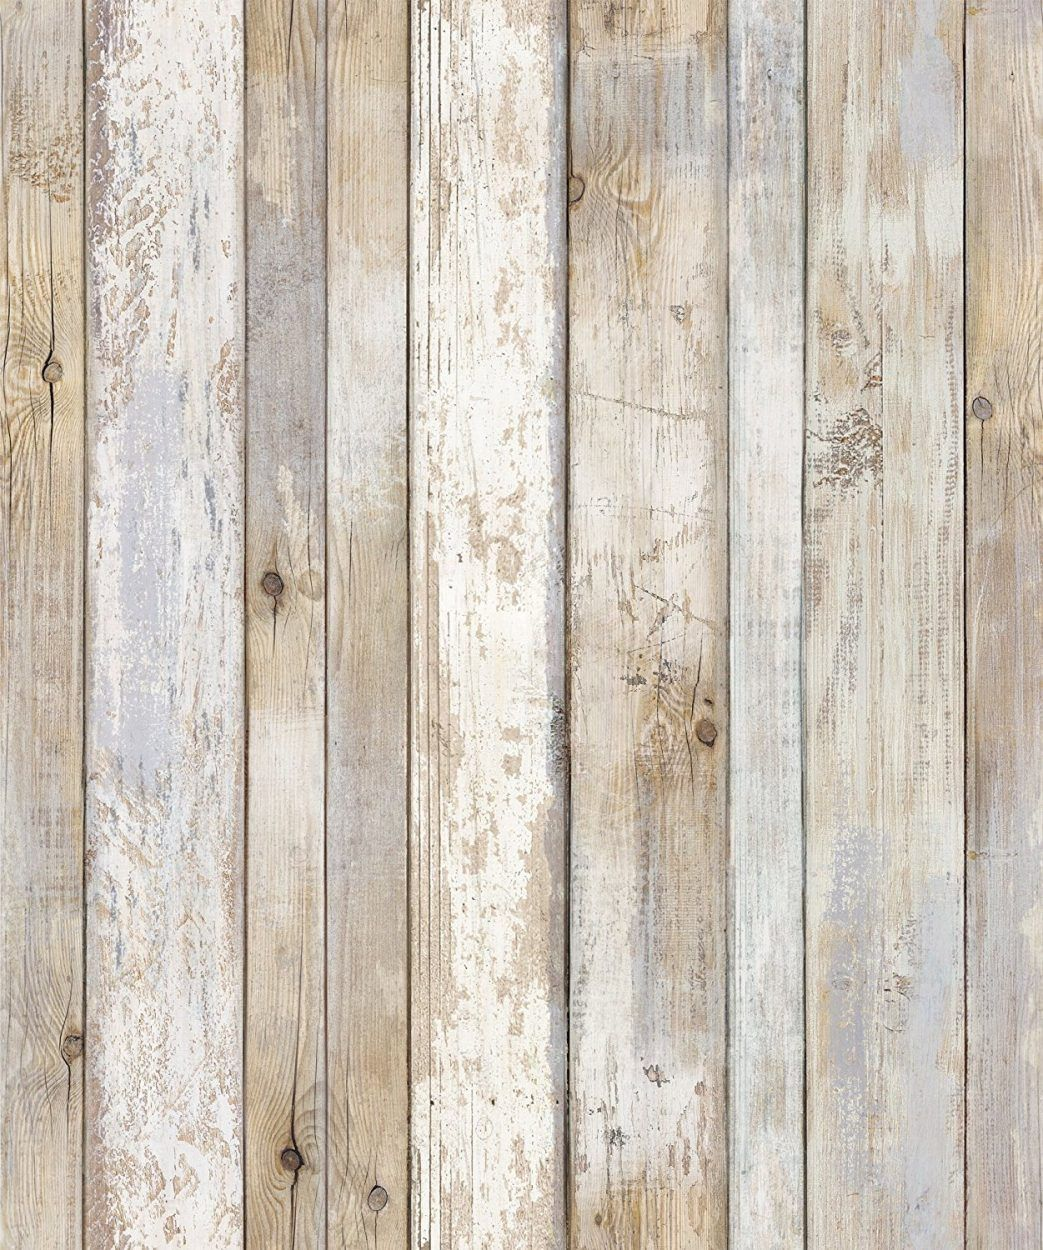 Amazon Affiliate Peel And Stick Weathered Wood How To Distress Wood Wood Grain Wallpaper Wood Paneling